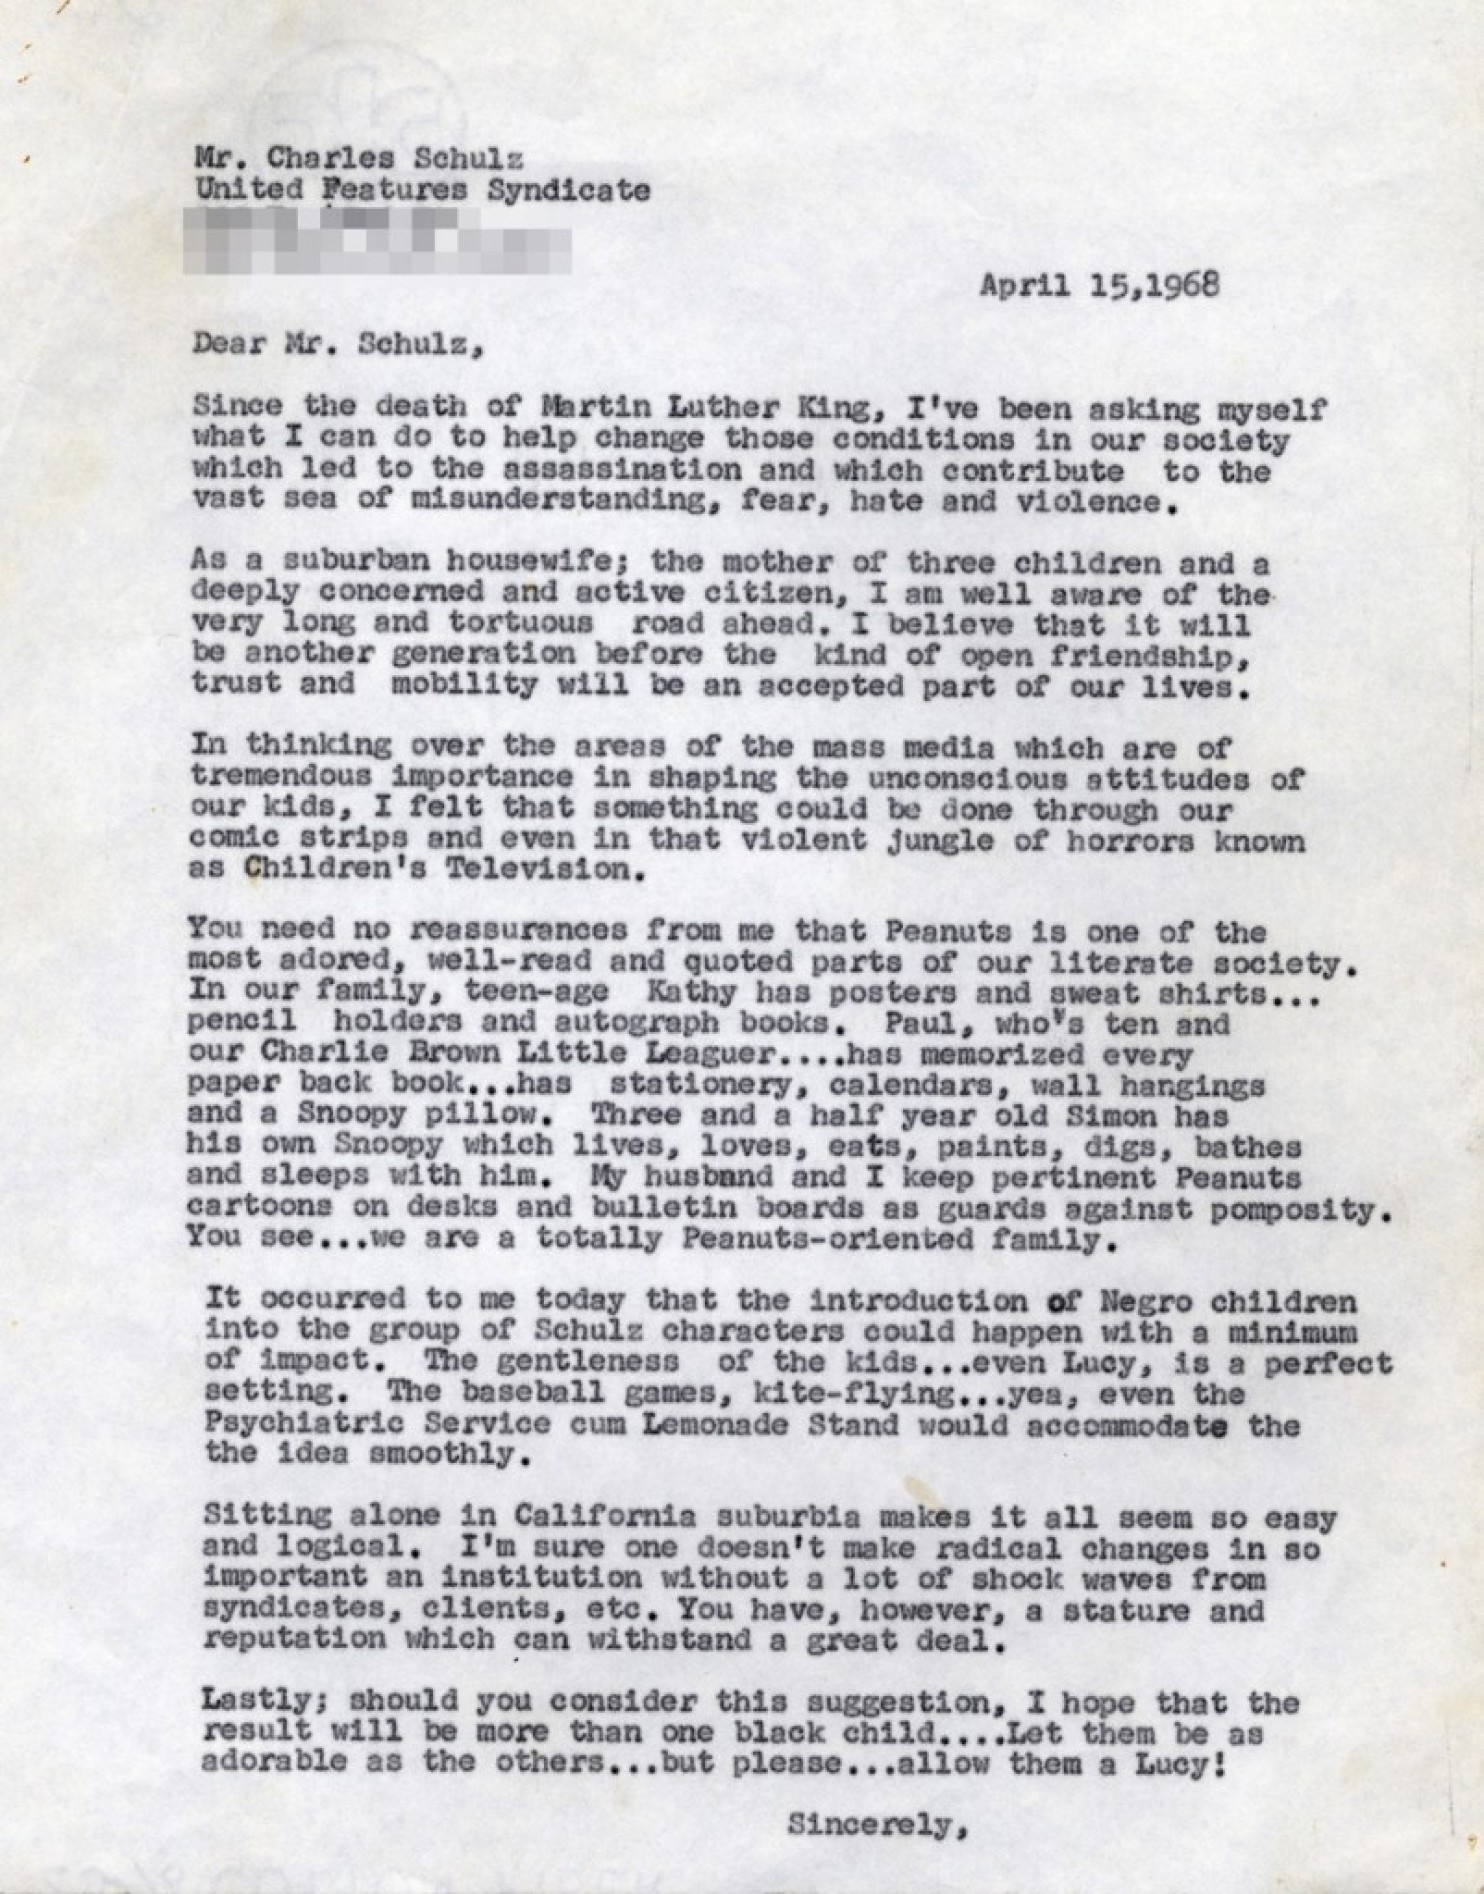 Letter to Charles M. Schultz